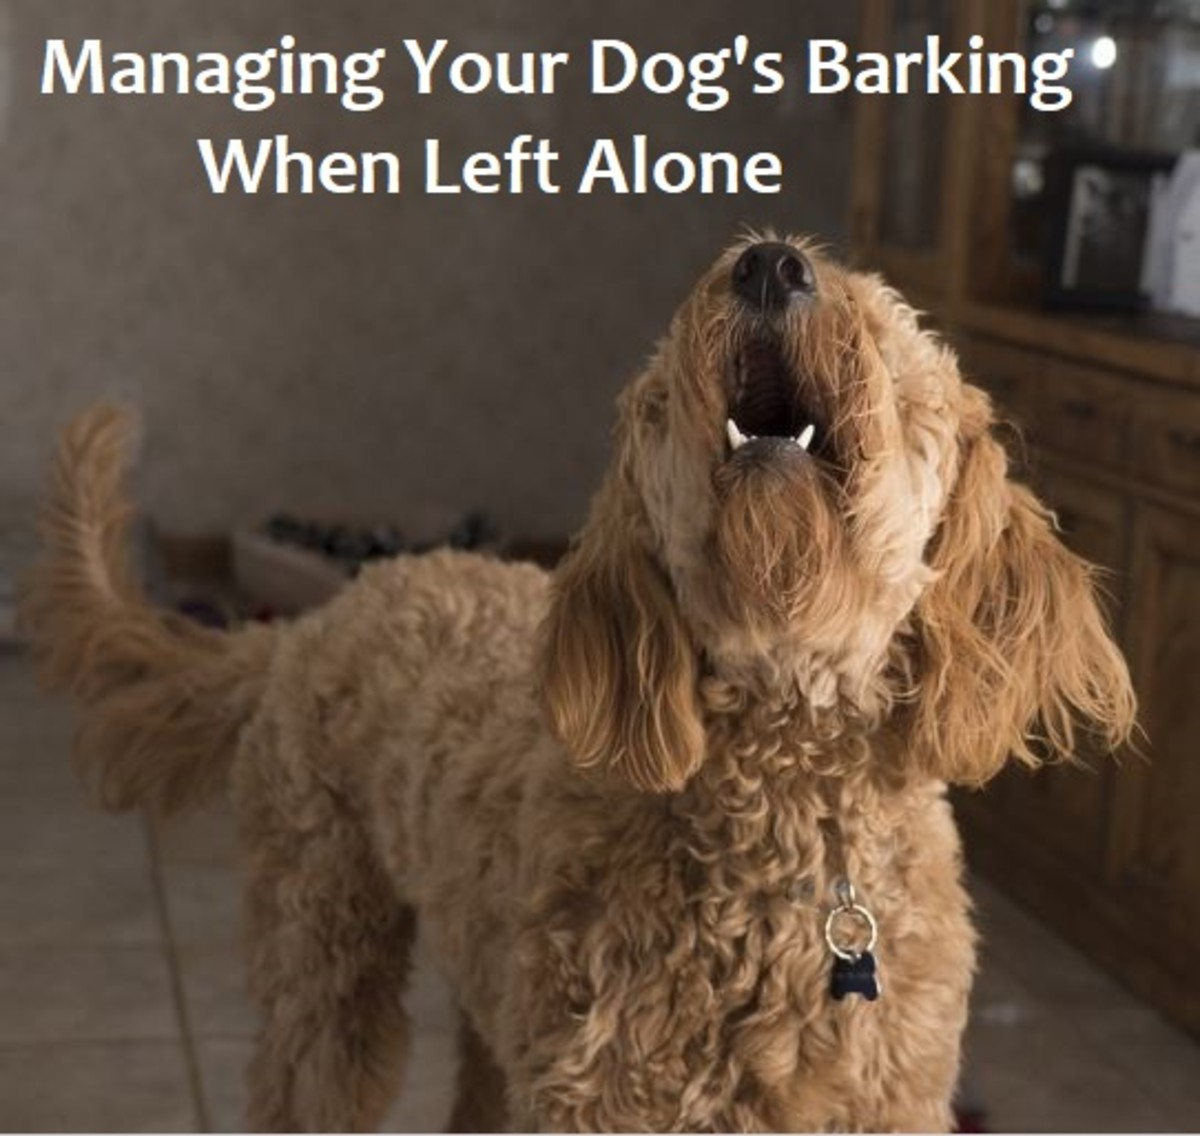 How to Deal With Dogs That Bark When Left Alone